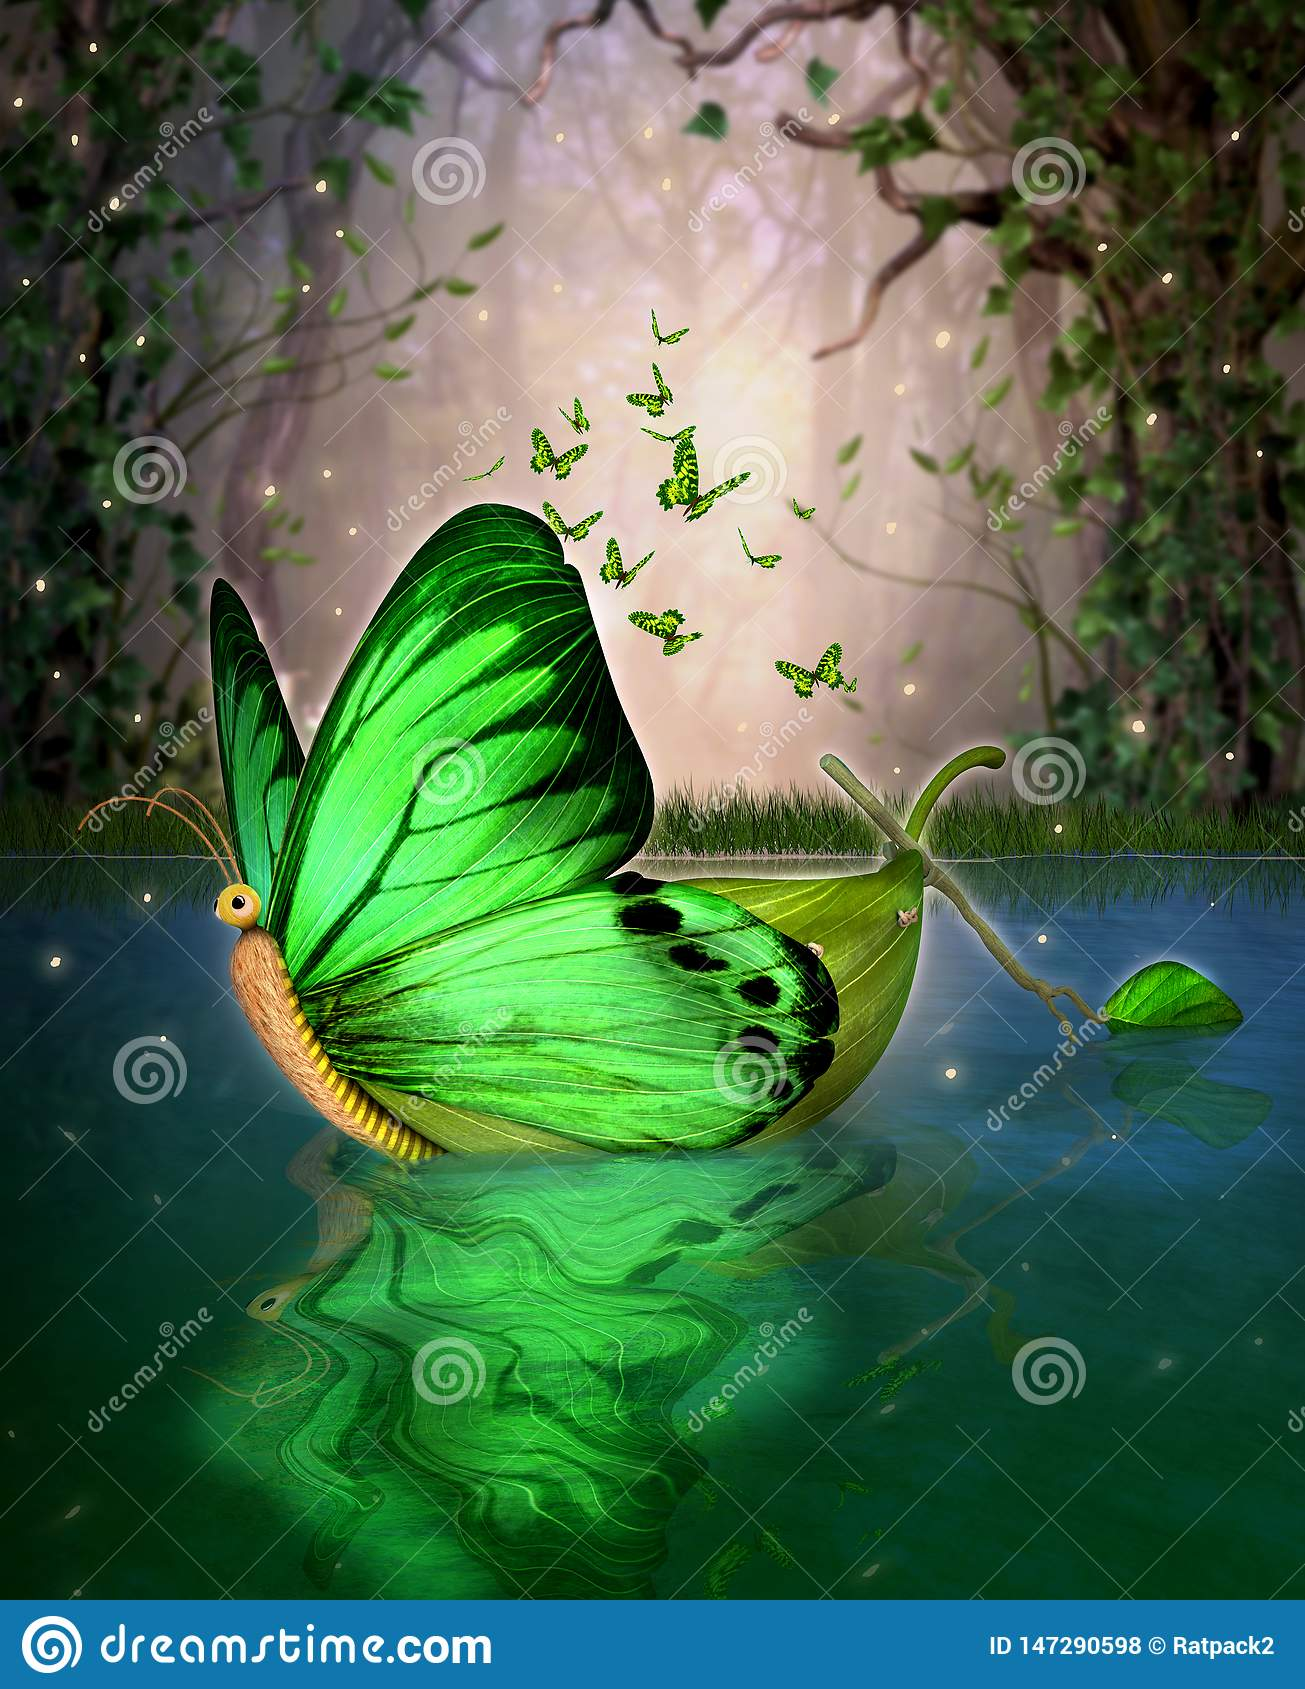 Magical Fairy Wildwood Water Craft Boat Butterfly Shape